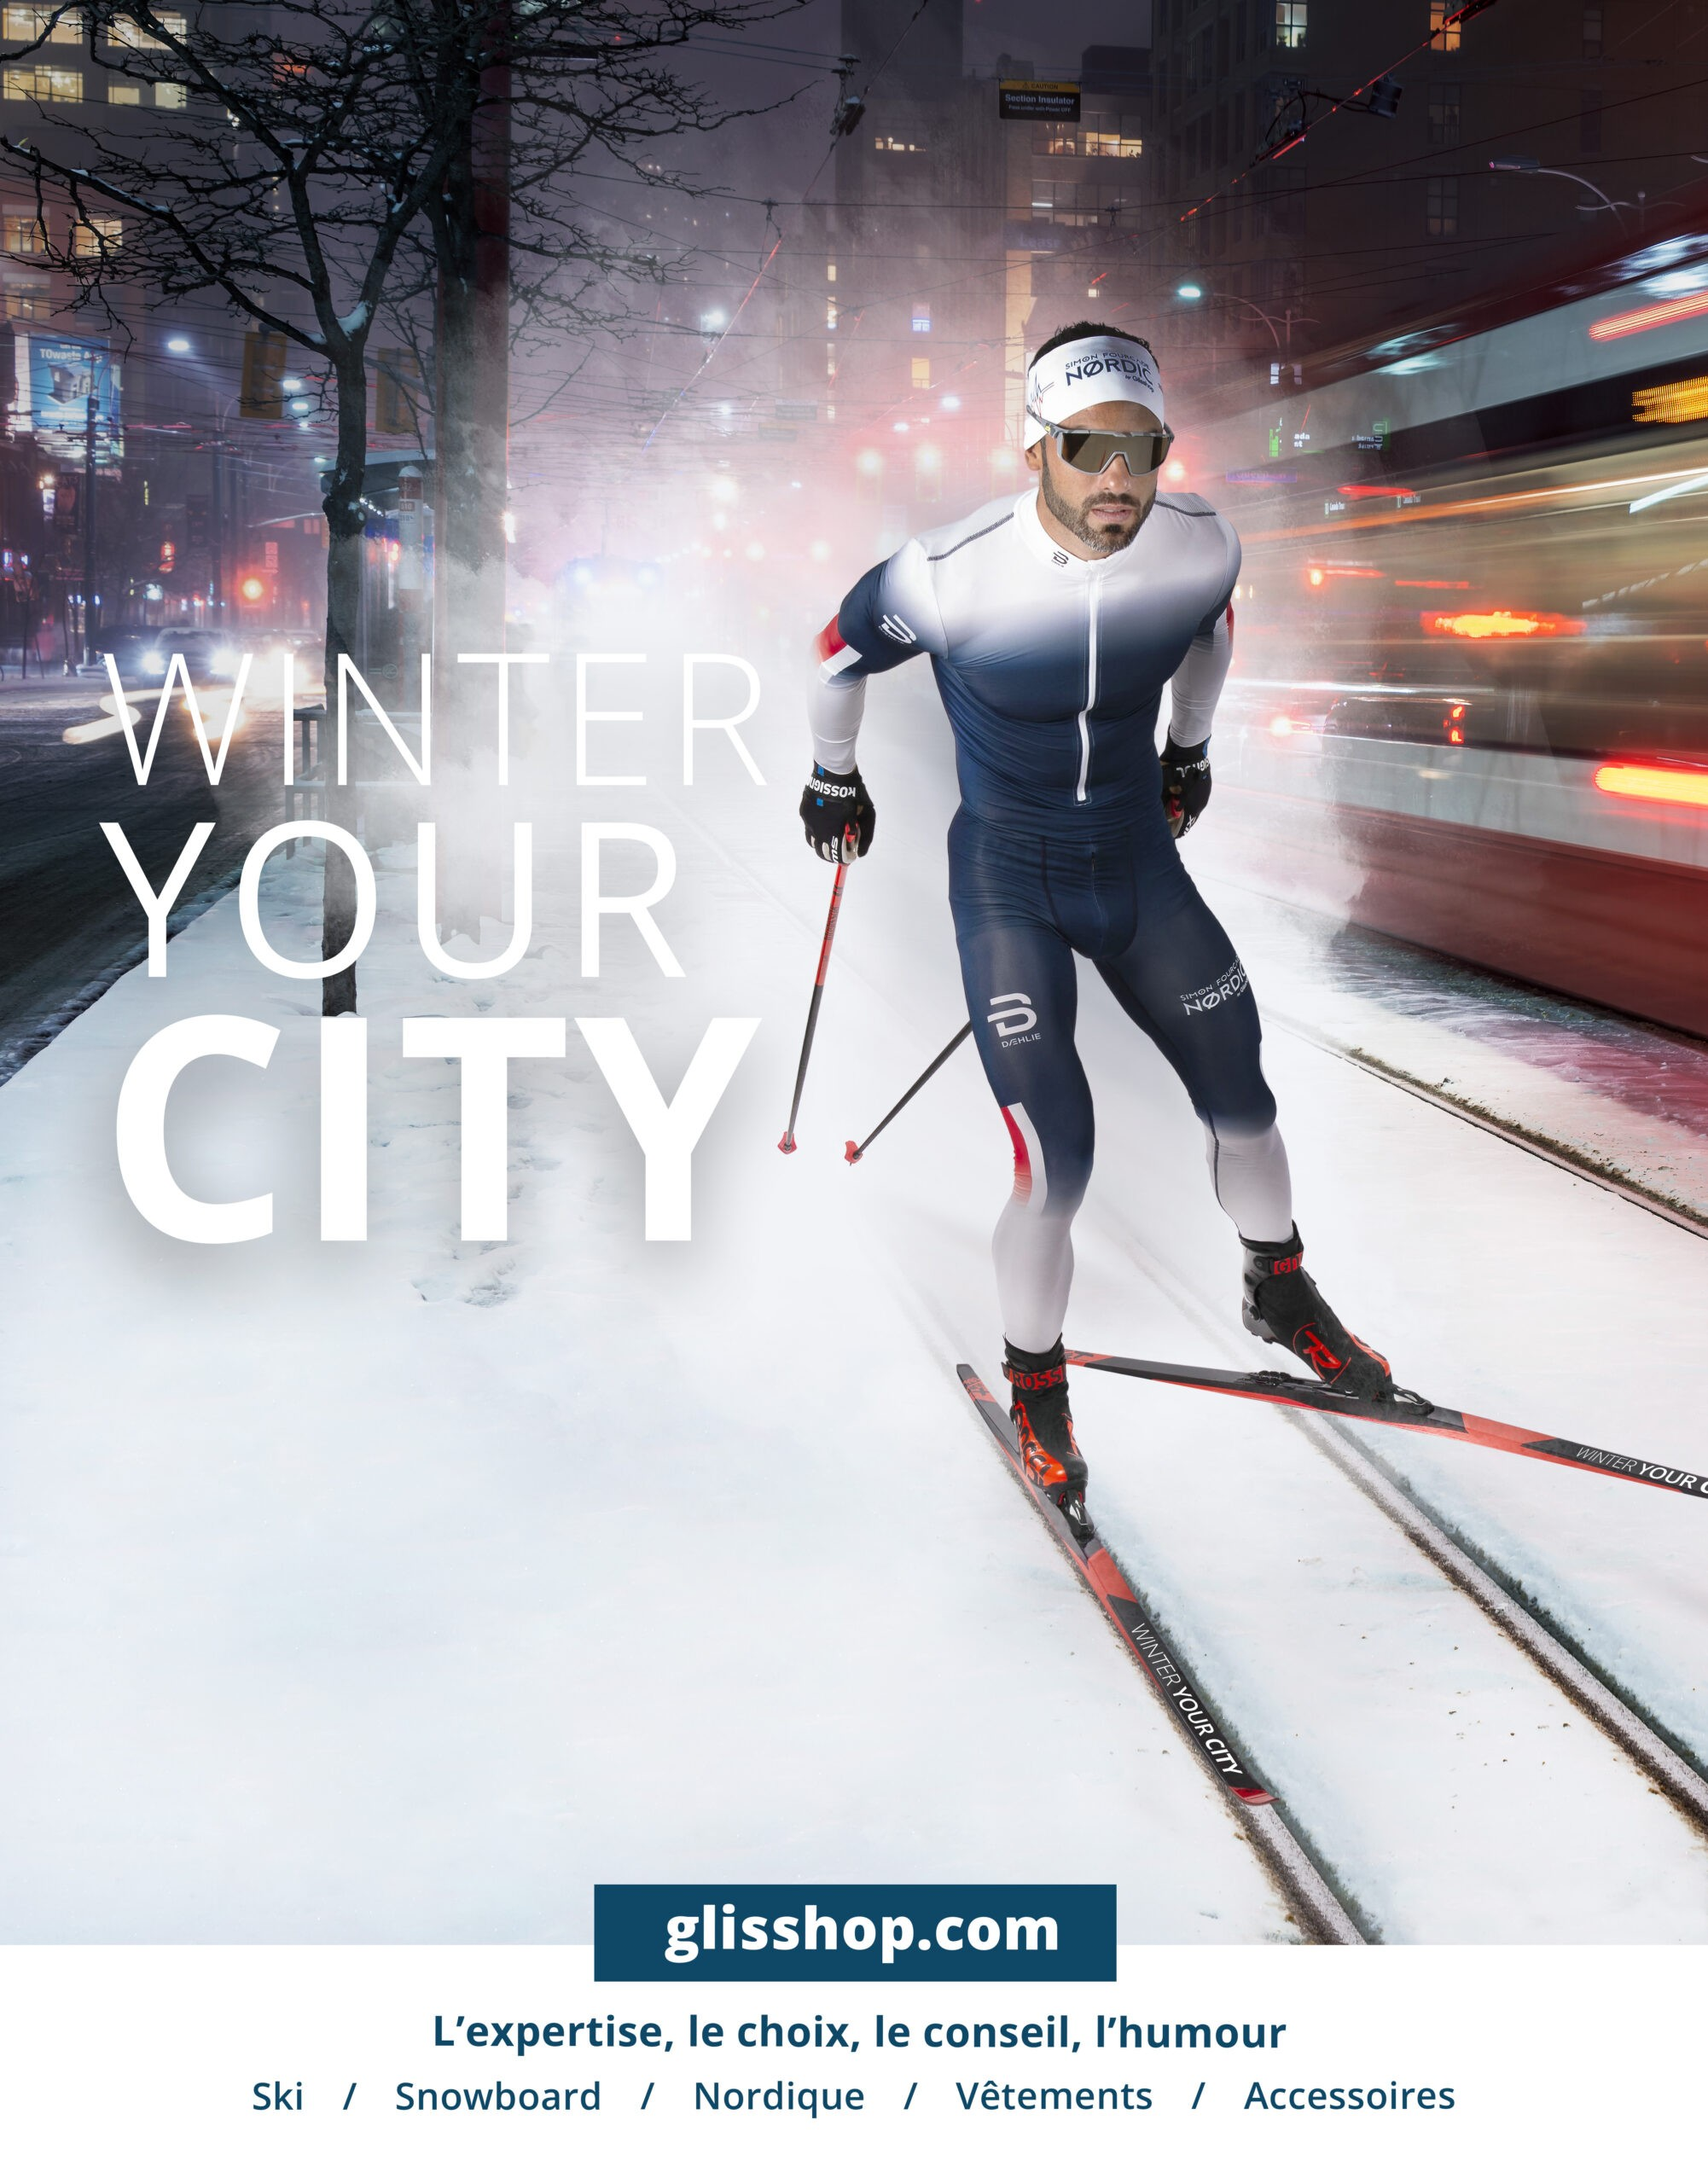 pistes de ski de fond en ville winter your city